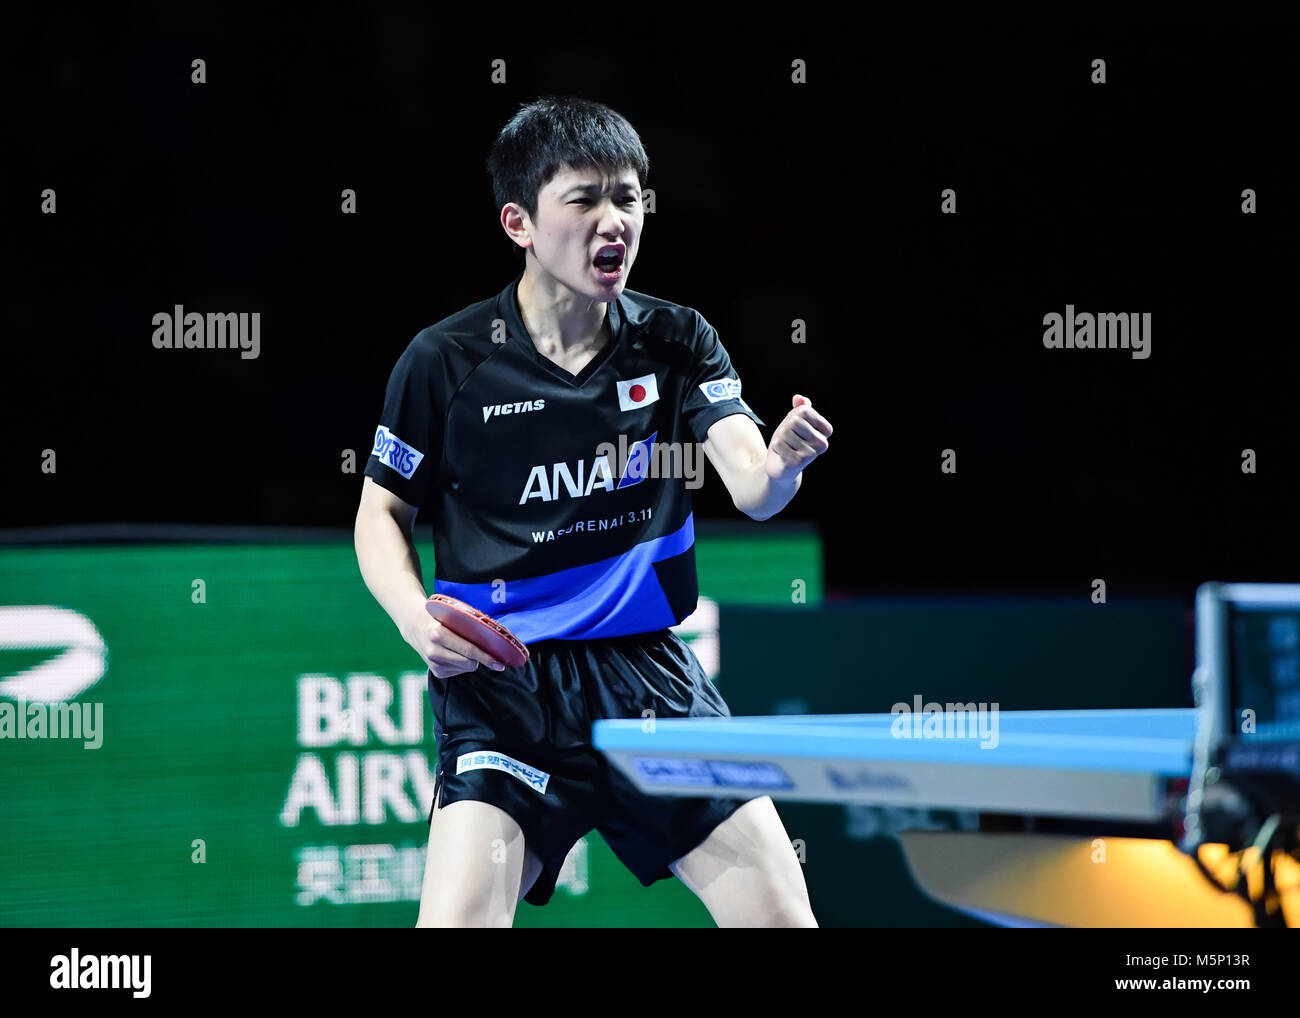 Di Table World Sangsu Durante Final Semi Cup Match Harimoto Uomini Tennis Giappone La Repubblica Tra Lee International Tomokazu Corea Del Federation Team YxHCpqwqz